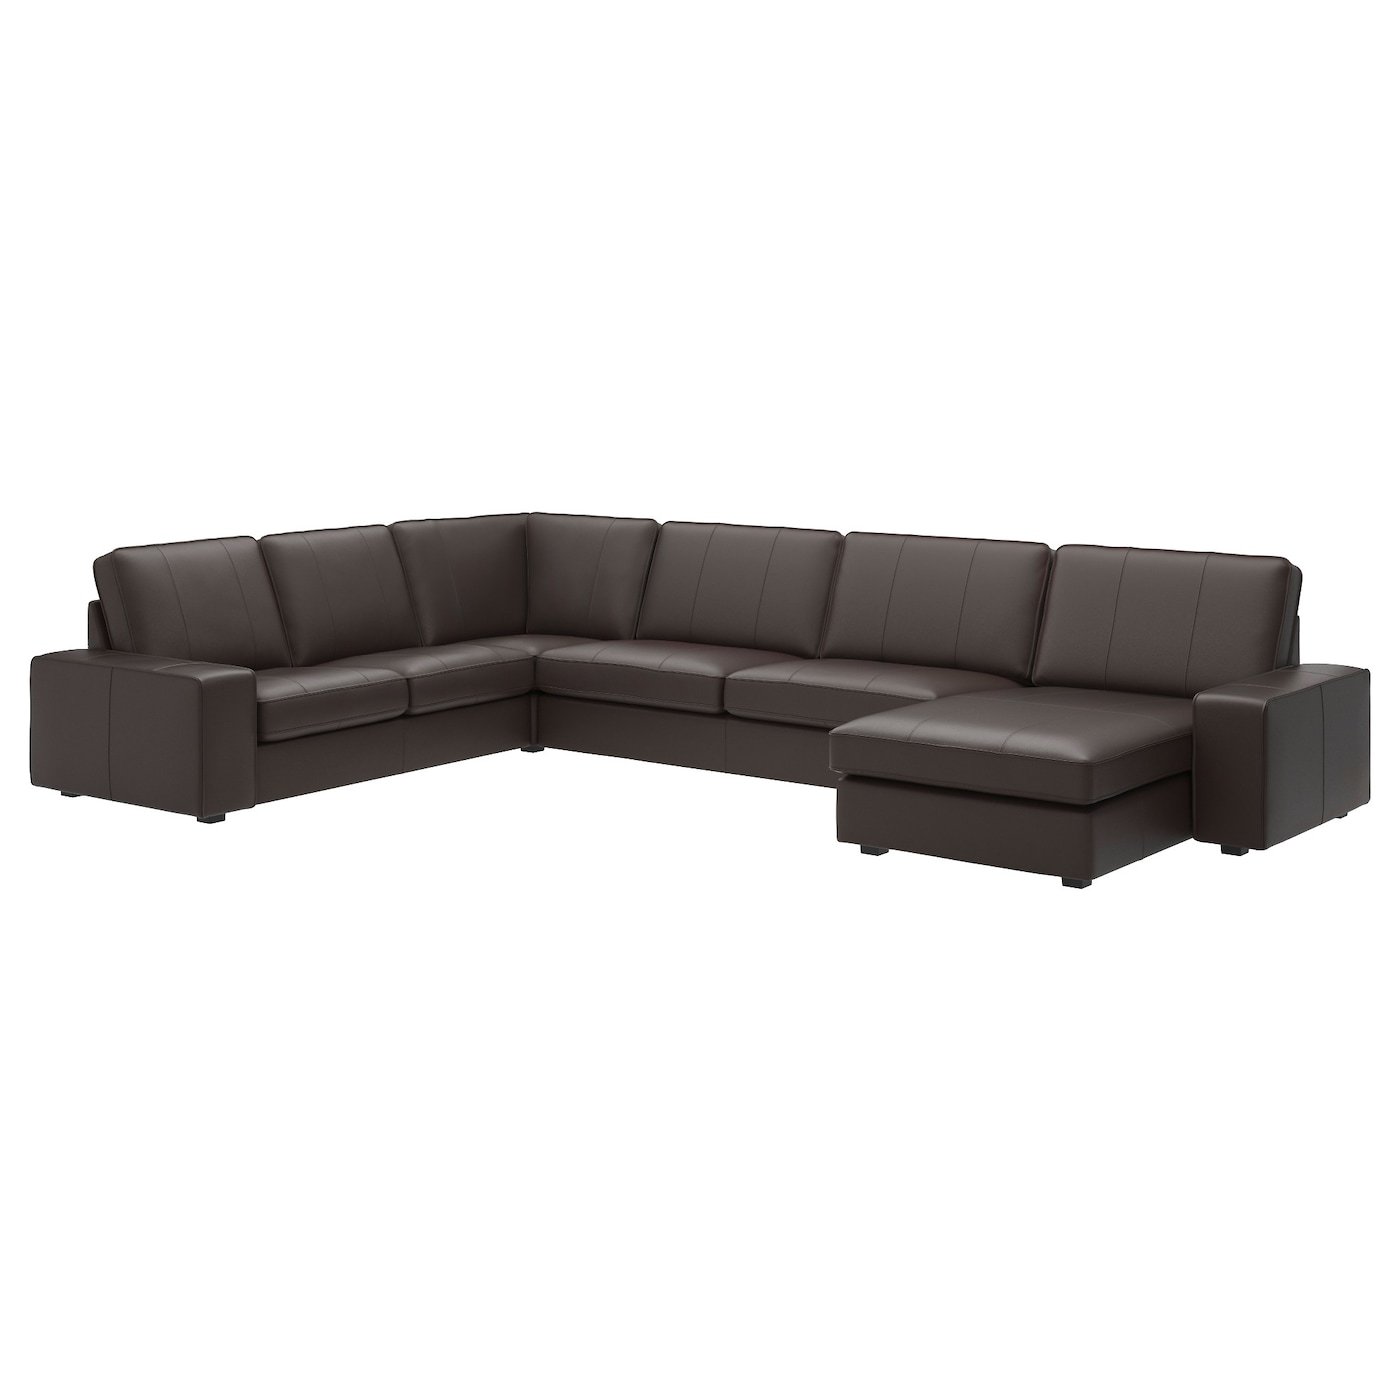 Kivik corner sofa 6 seat with chaise longue grann bomstad for Brown chaise sofa